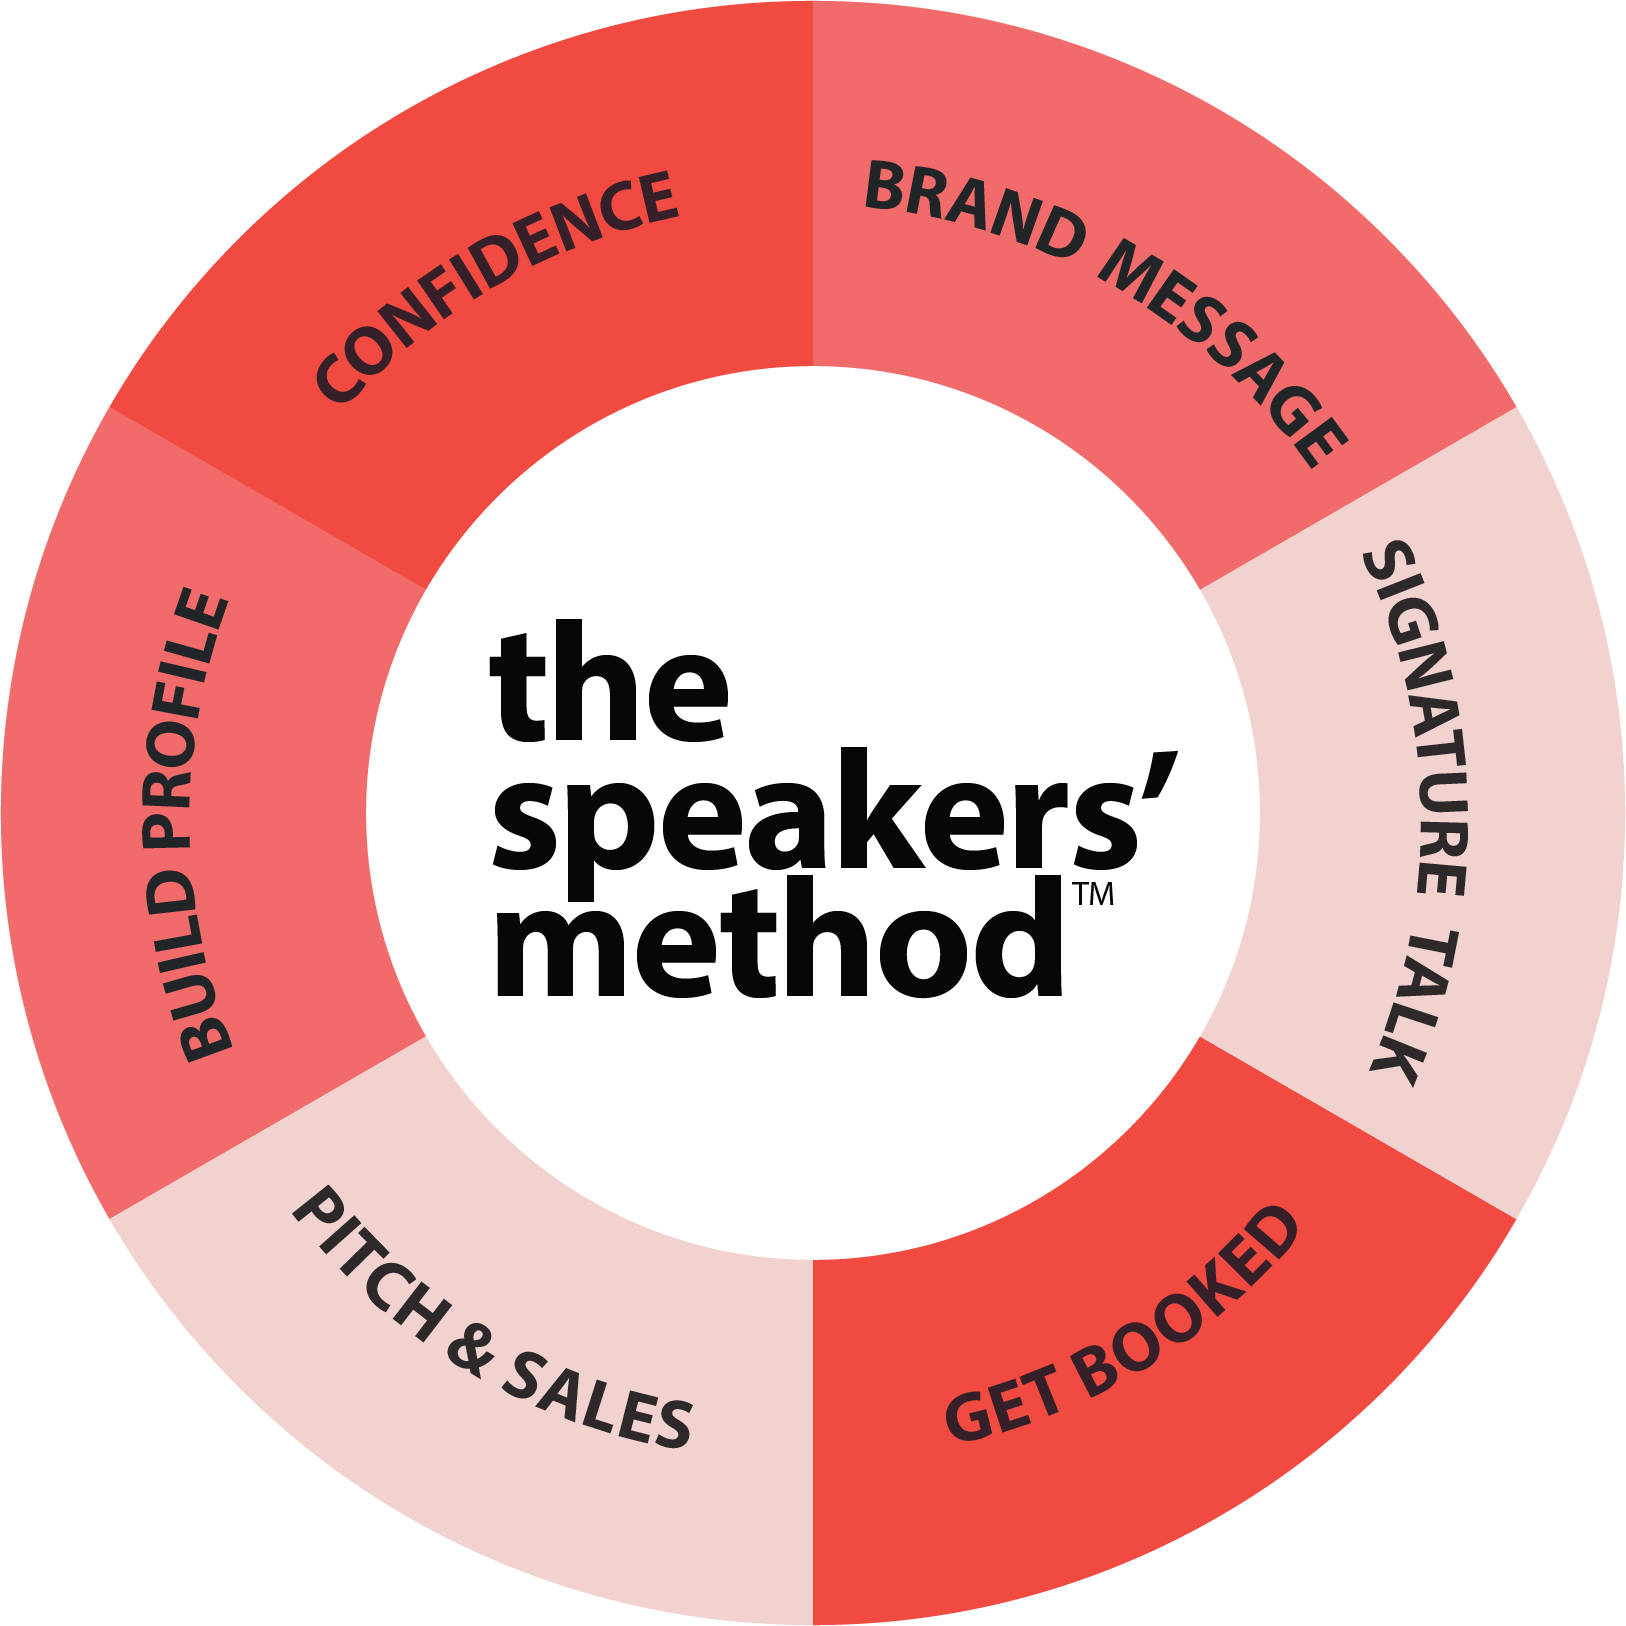 the speakers' method